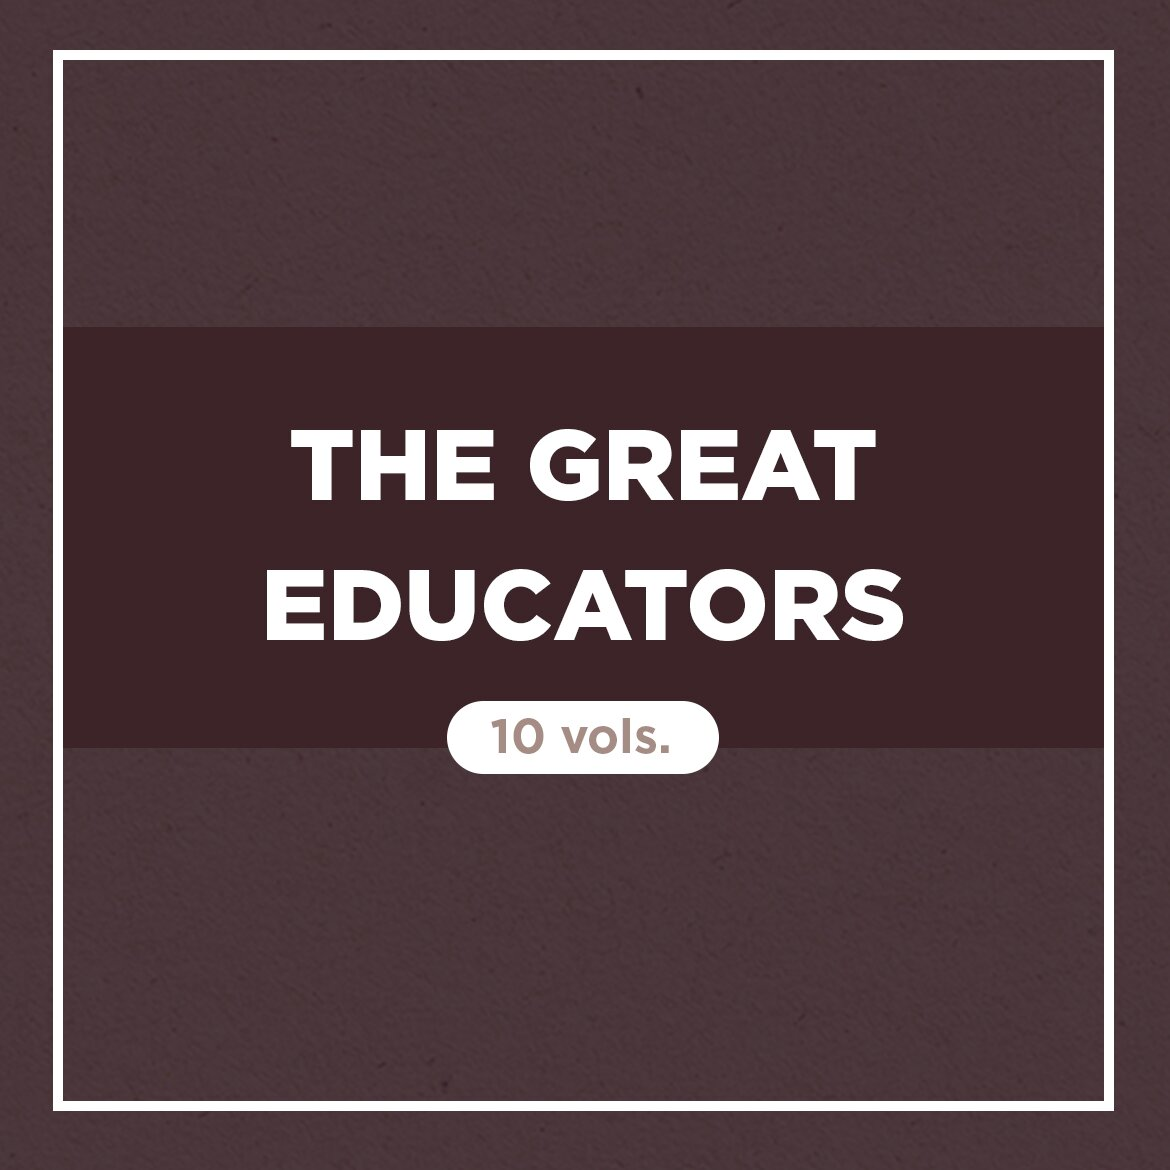 The Great Educators (10 vols.)